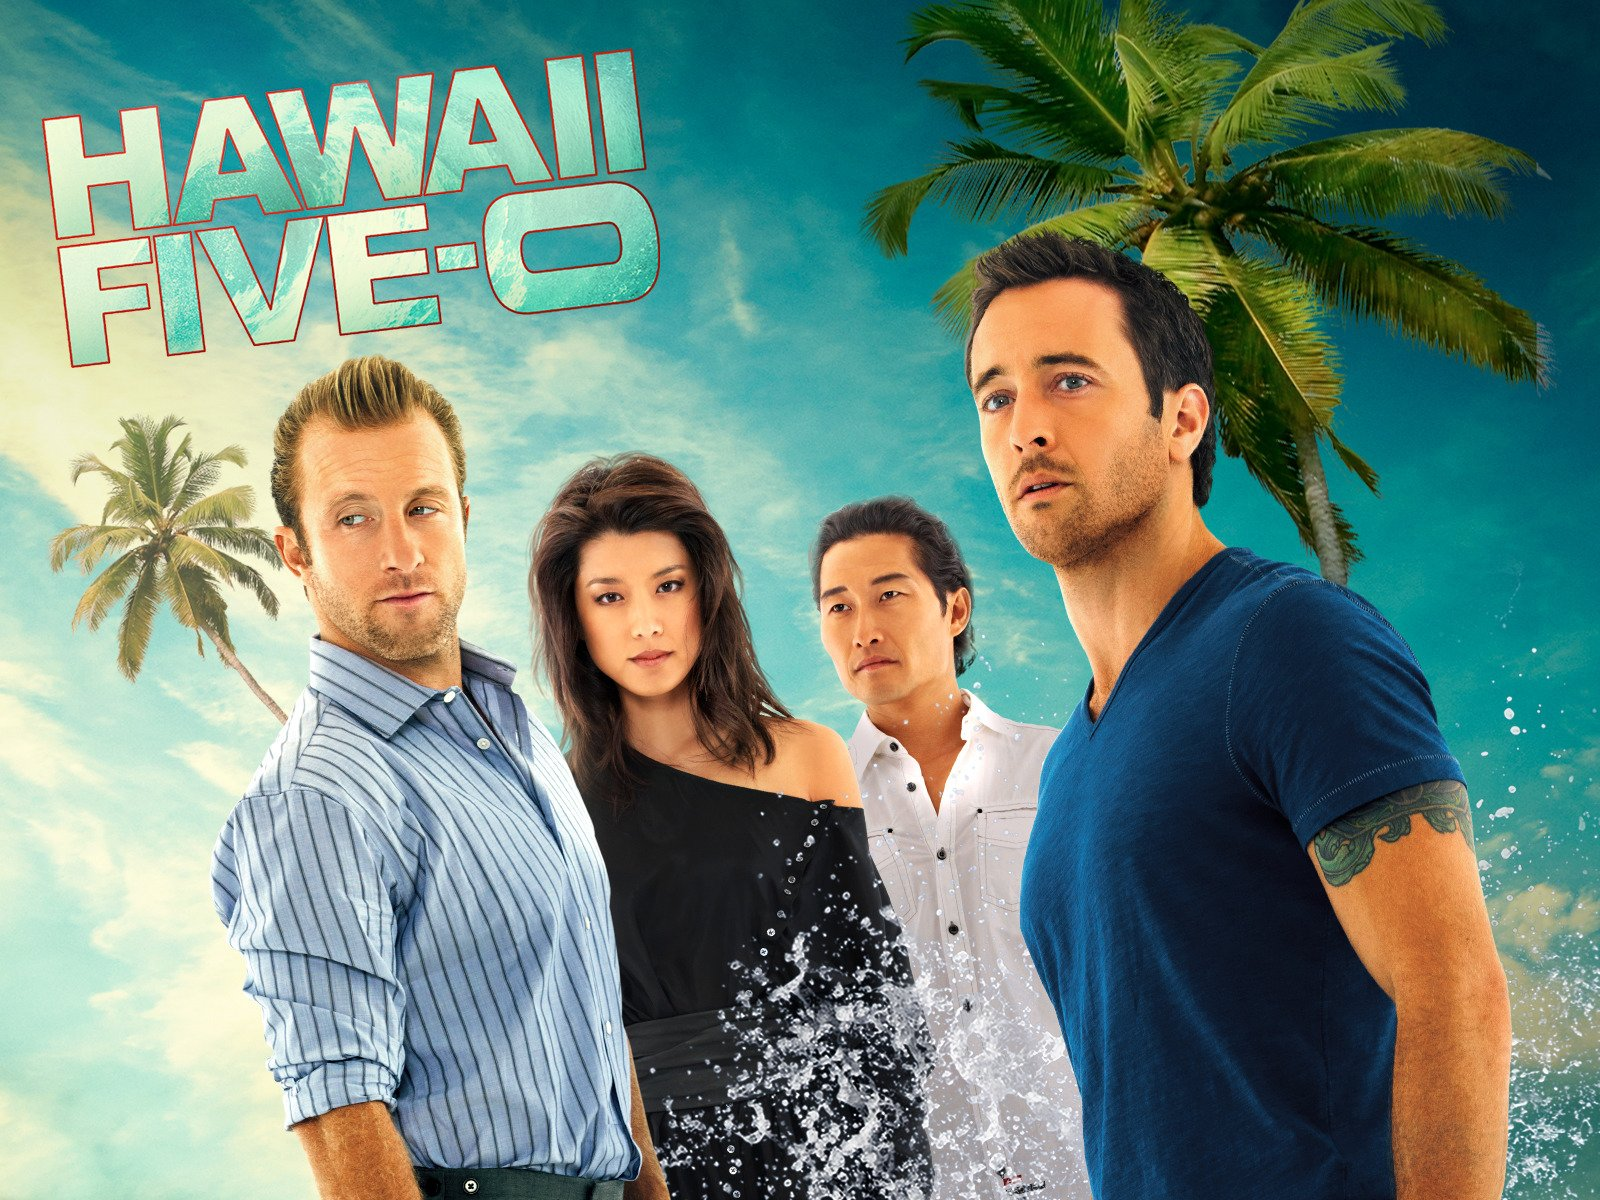 hawaii five-0 season 1 episode 23 online